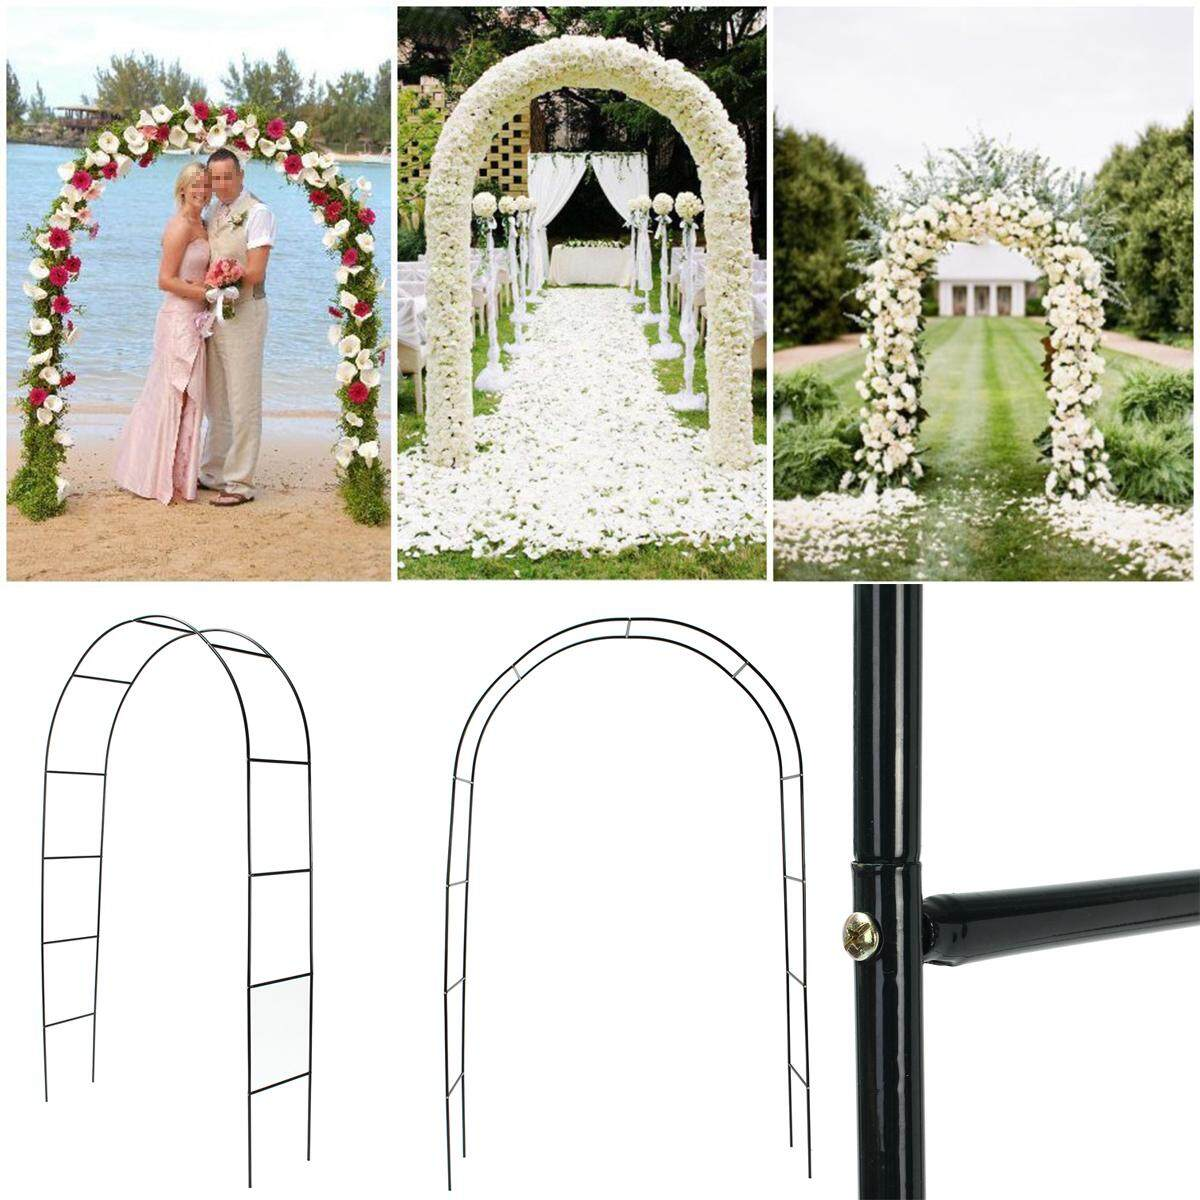 Large Glass Fiber Table Balloon Arch Kit For Birthday Decorations Table Ballon Arch for Wedding Decorations Party Decorations Christmas Decor